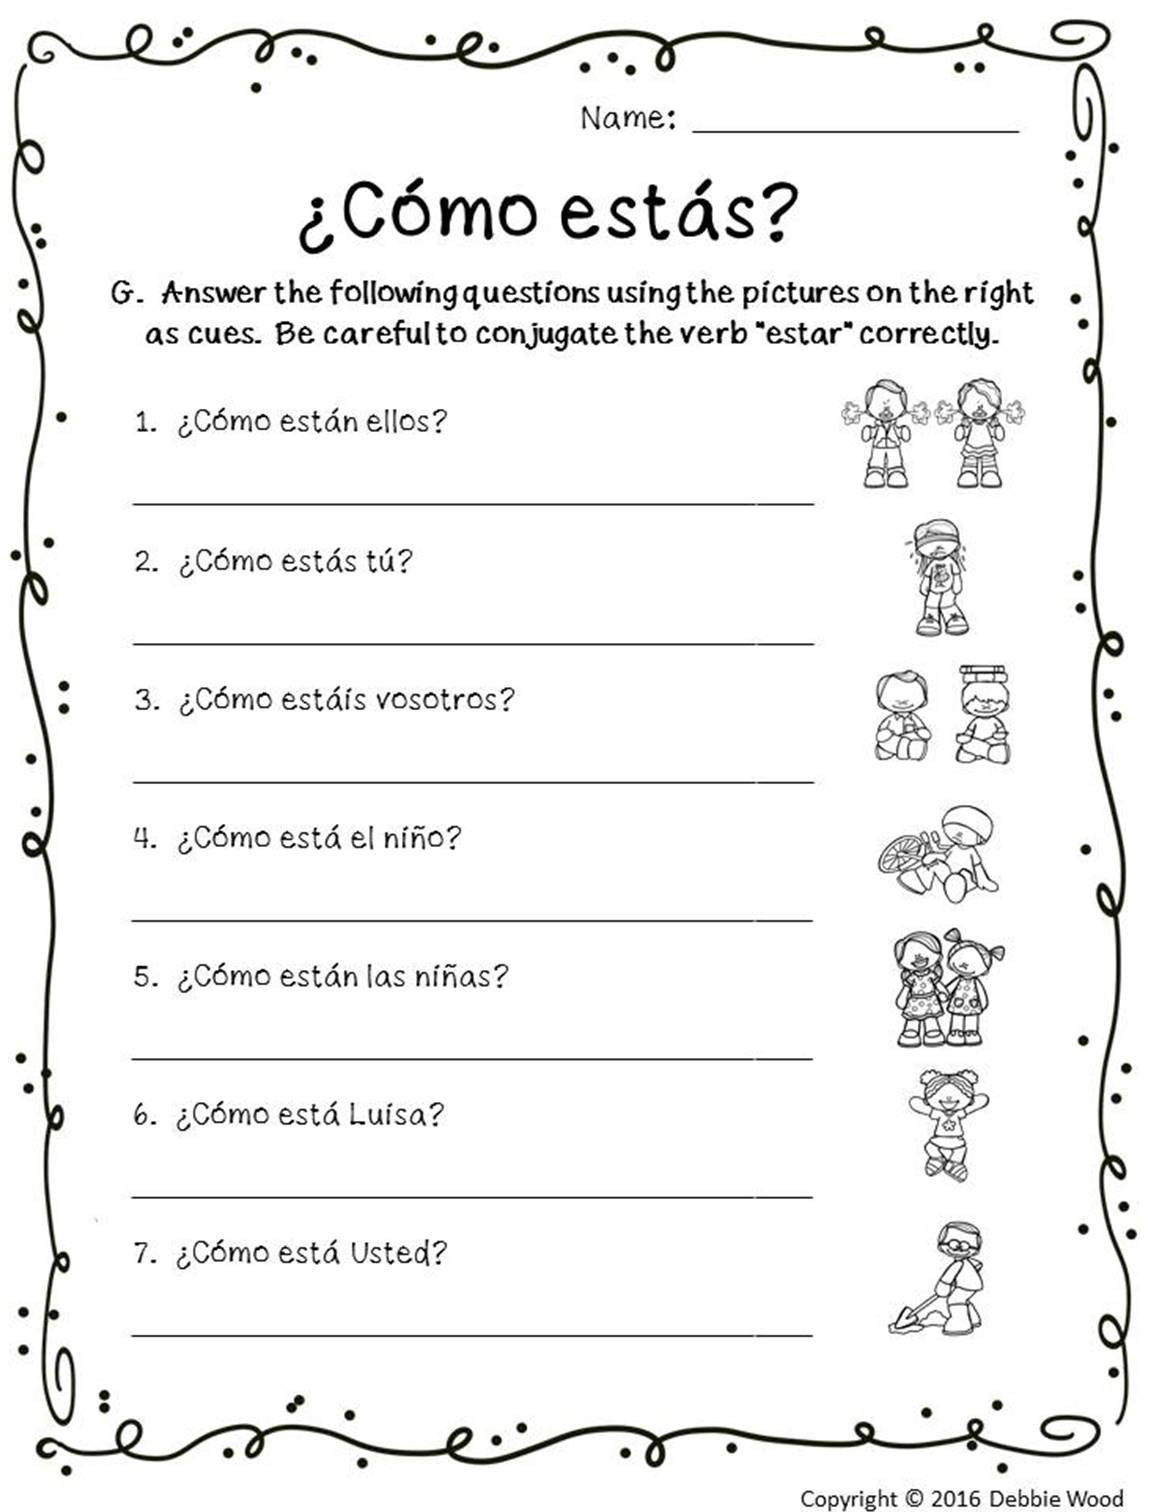 Spanish Verb Conjugation Worksheets Printable Spanish Verb Querer Worksheet